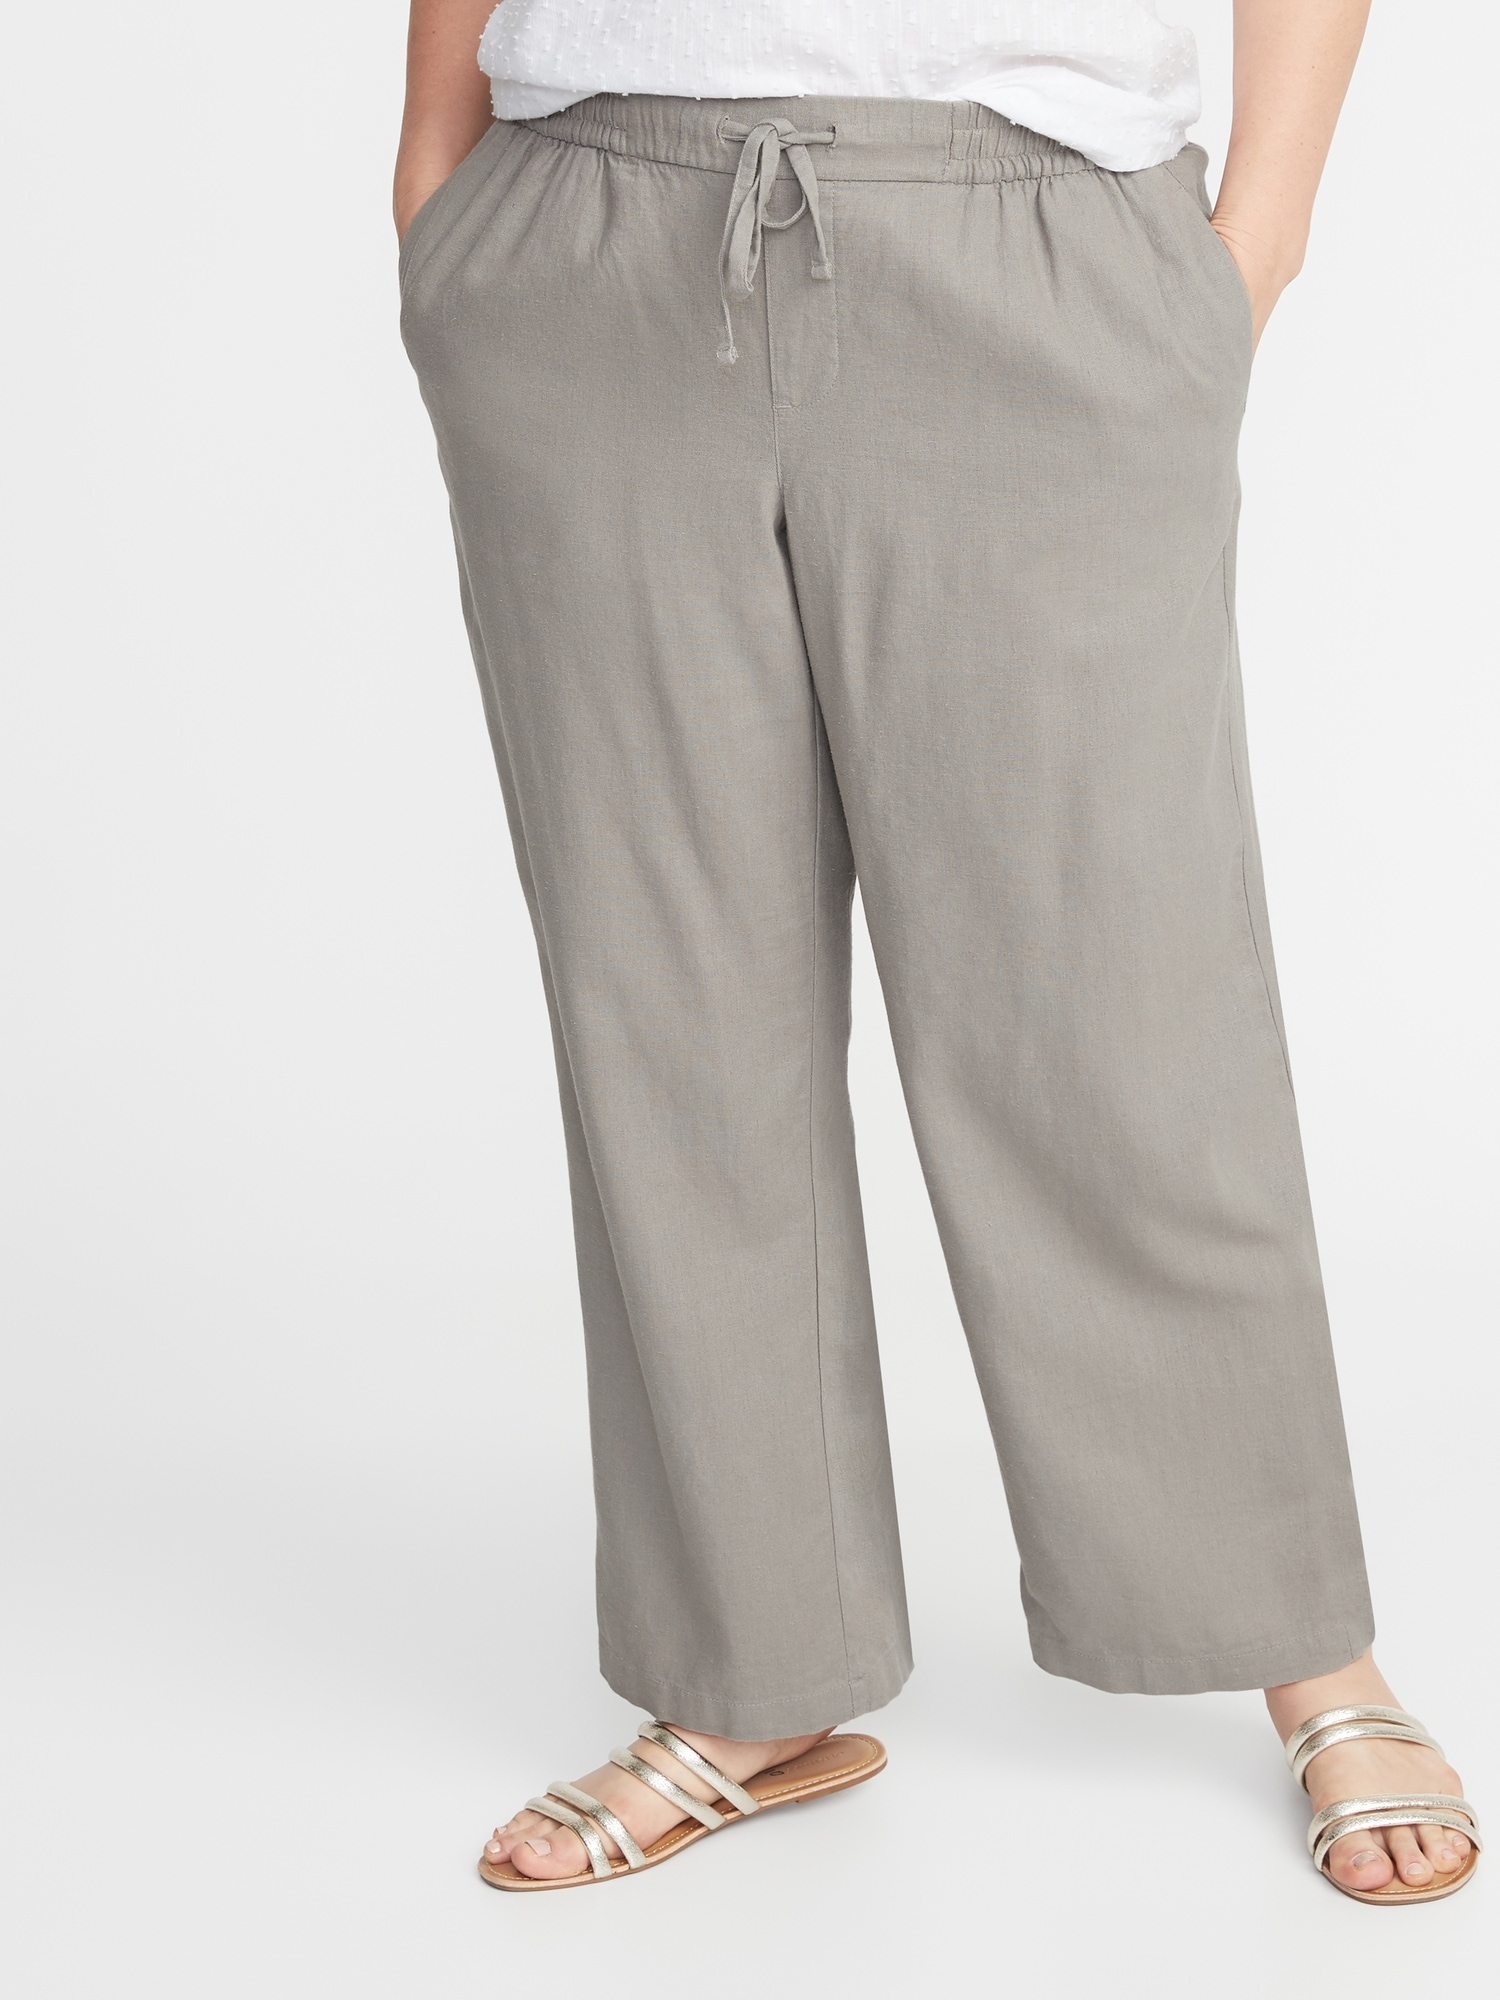 low price sale pretty and colorful elegant shoes Plus-Size Wide-Leg Linen-Blend Pants | Old Navy